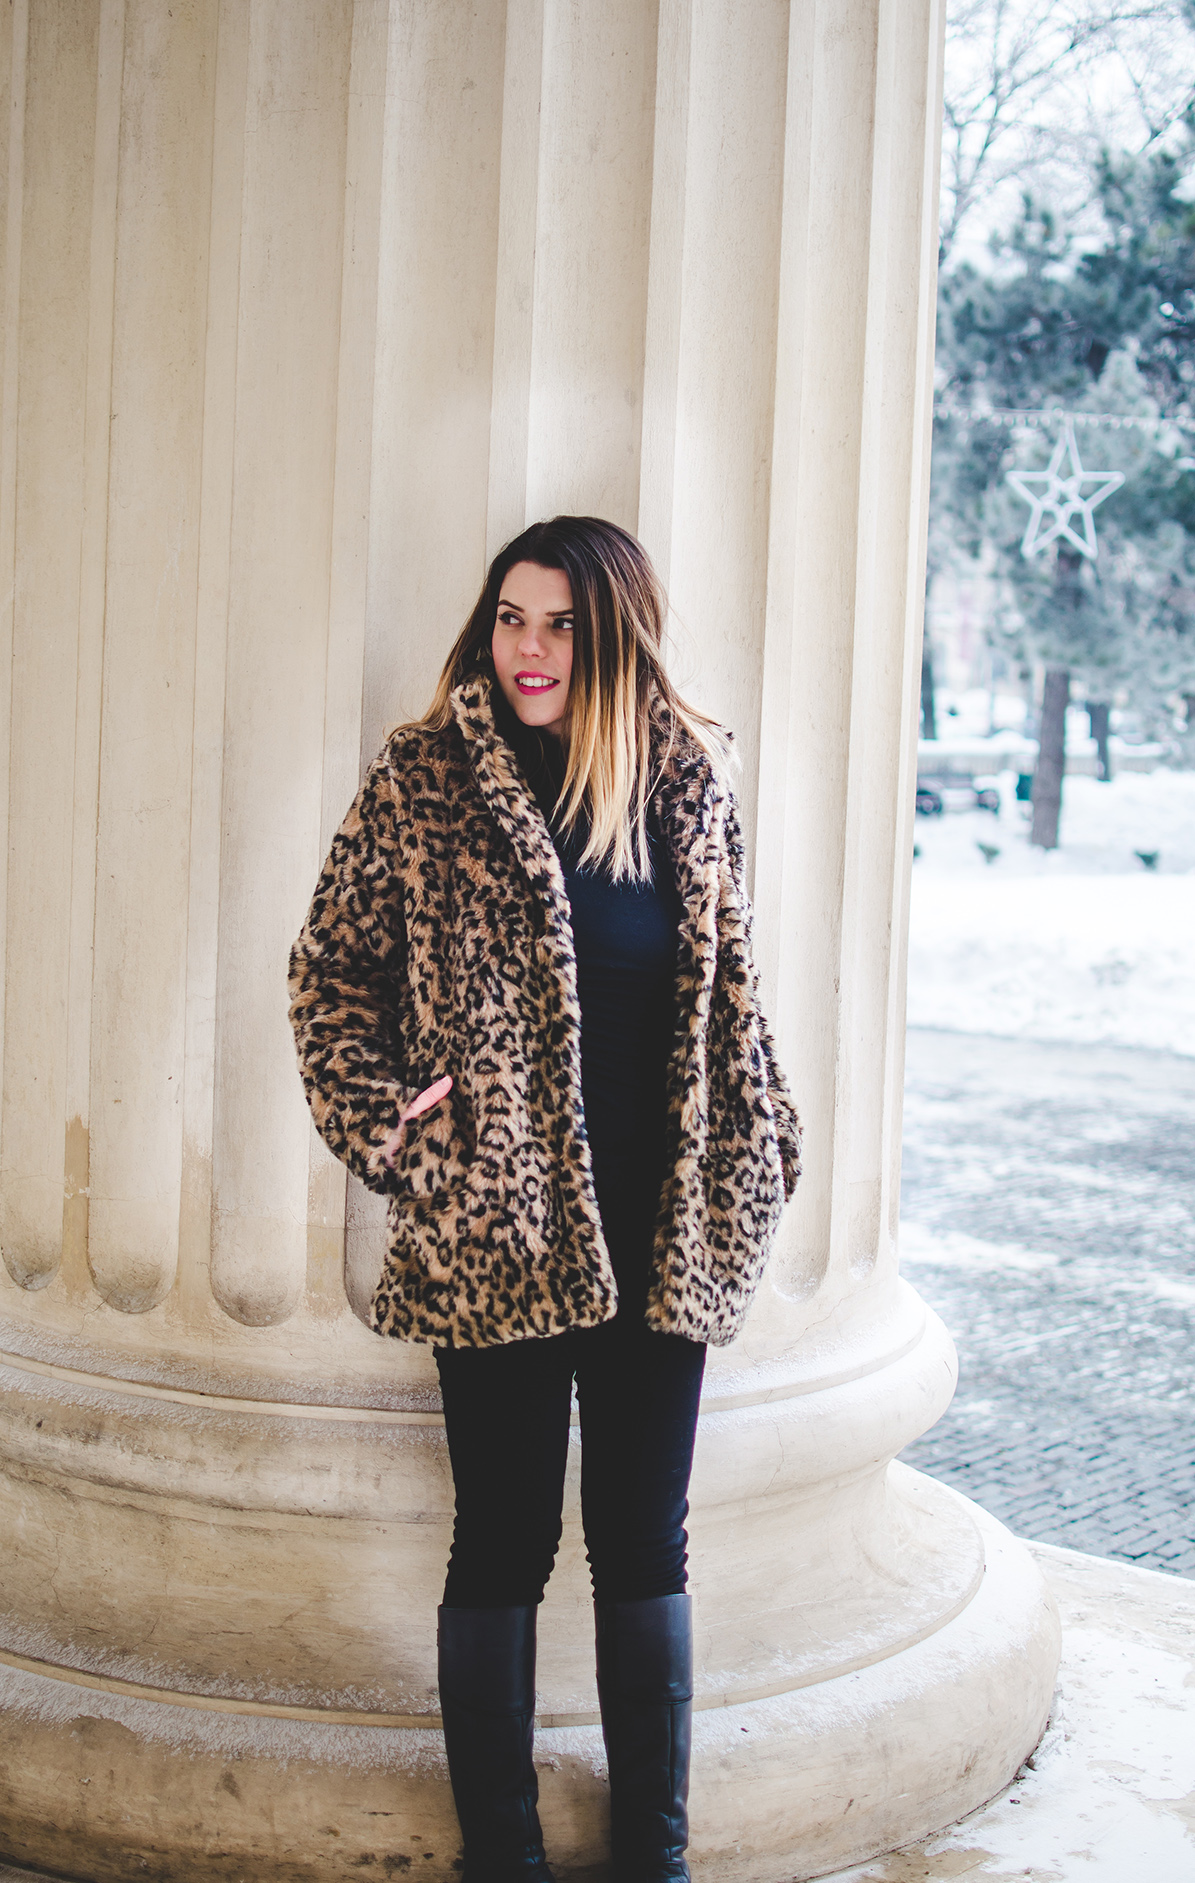 leopard print jacket outfit anotherside of me blog